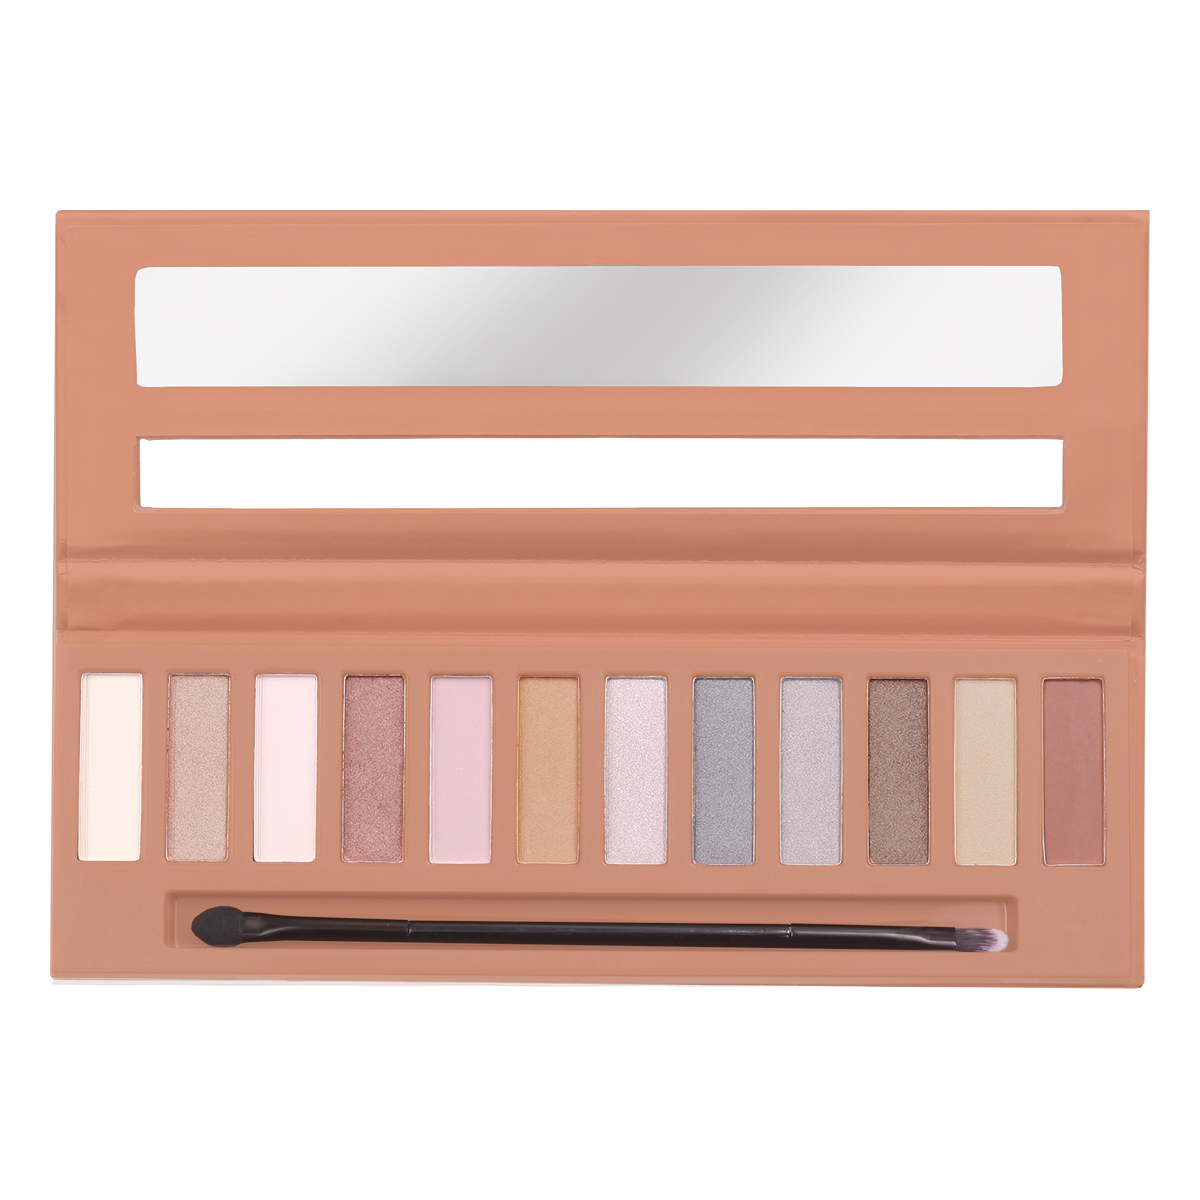 Silky Eyeshadow 12 Color Palette - Nude